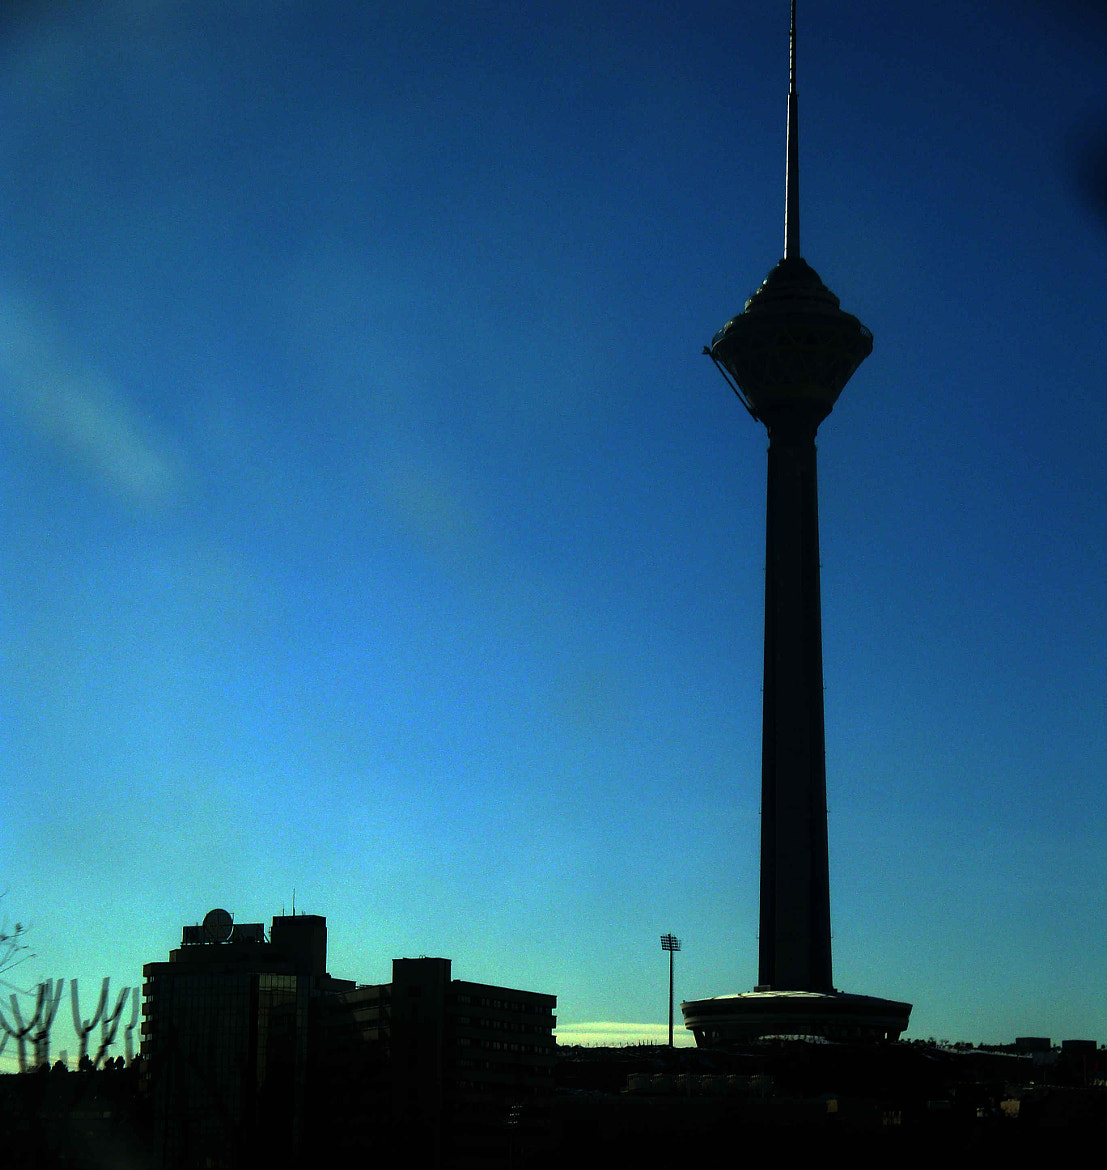 Photograph Milad Tower in Tehran  by pedram Hosseini on 500px